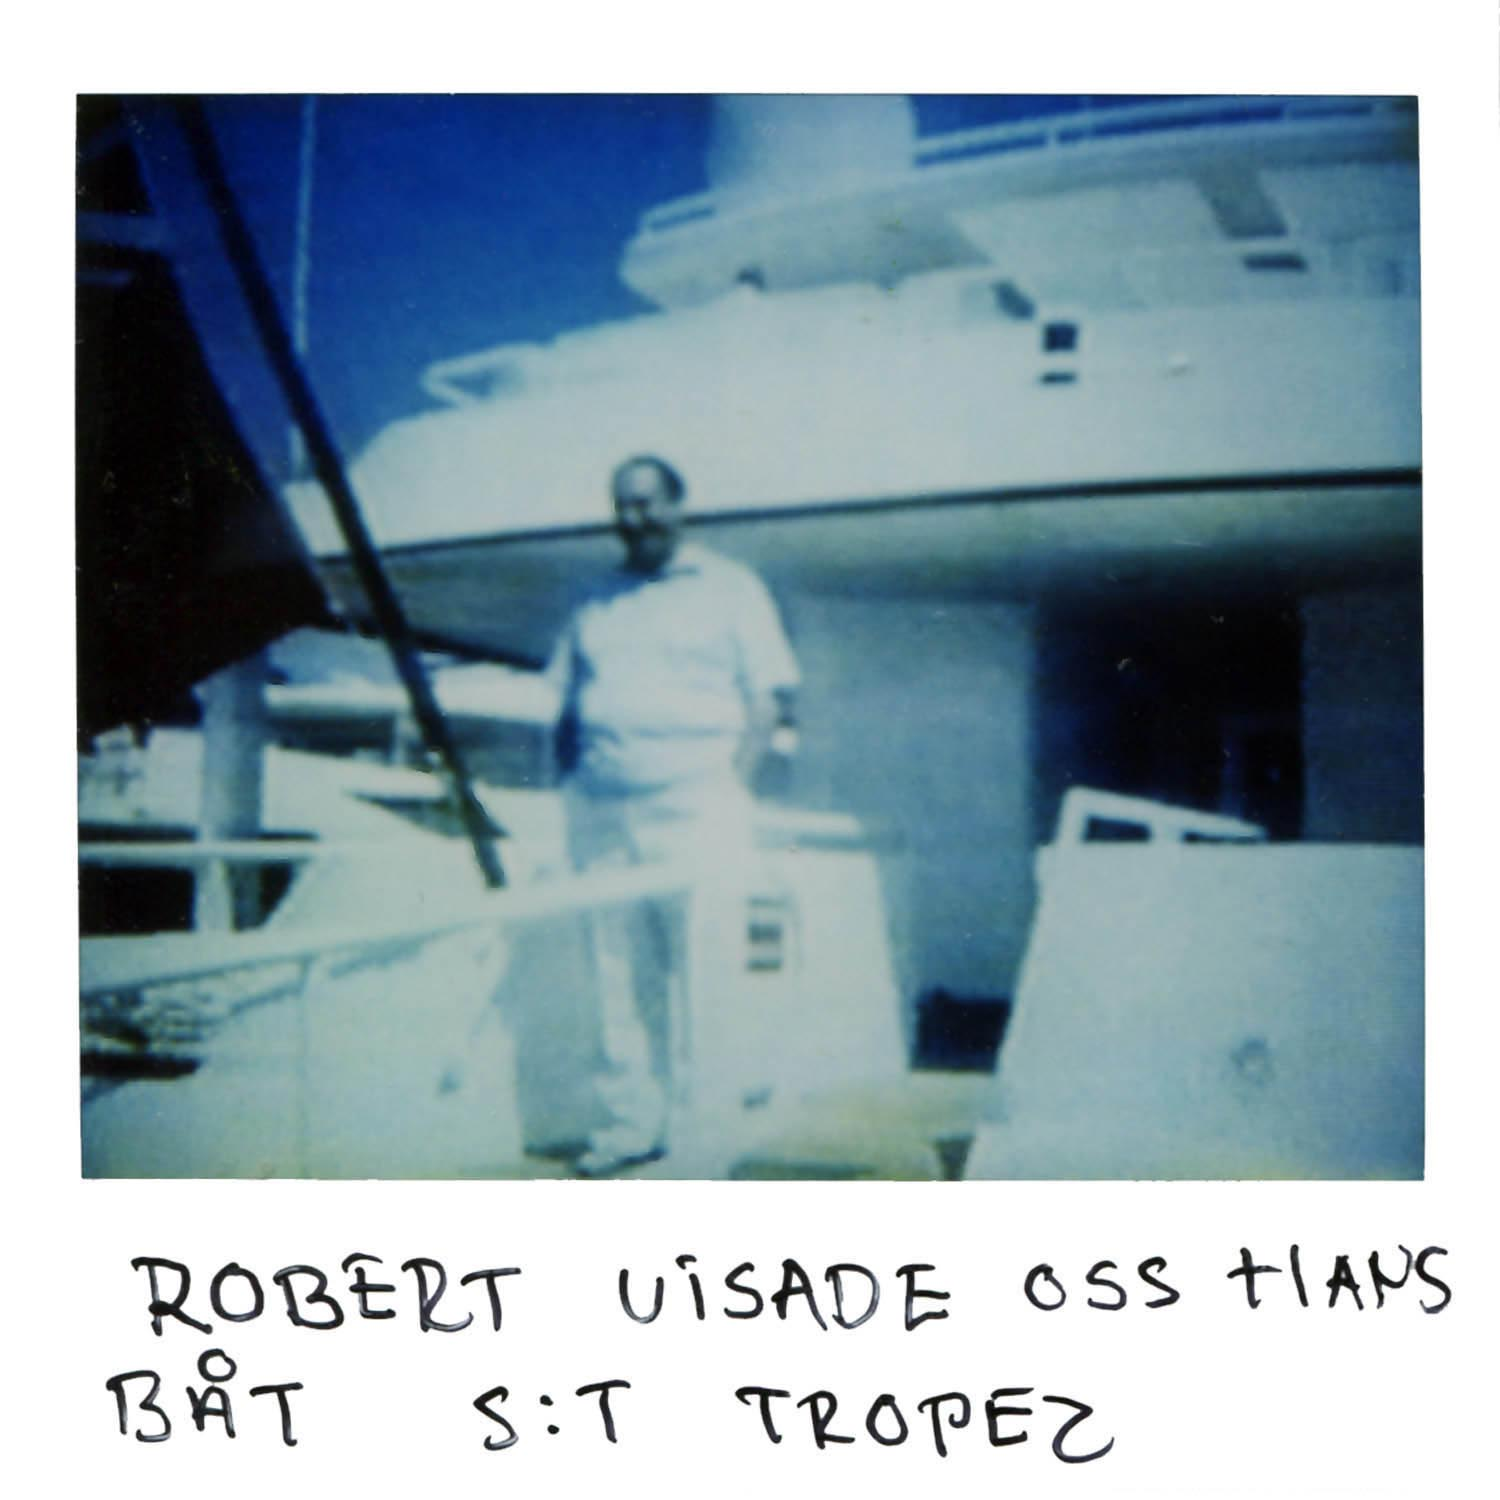 Robert showed us his boat or yacht in Saint Tropez